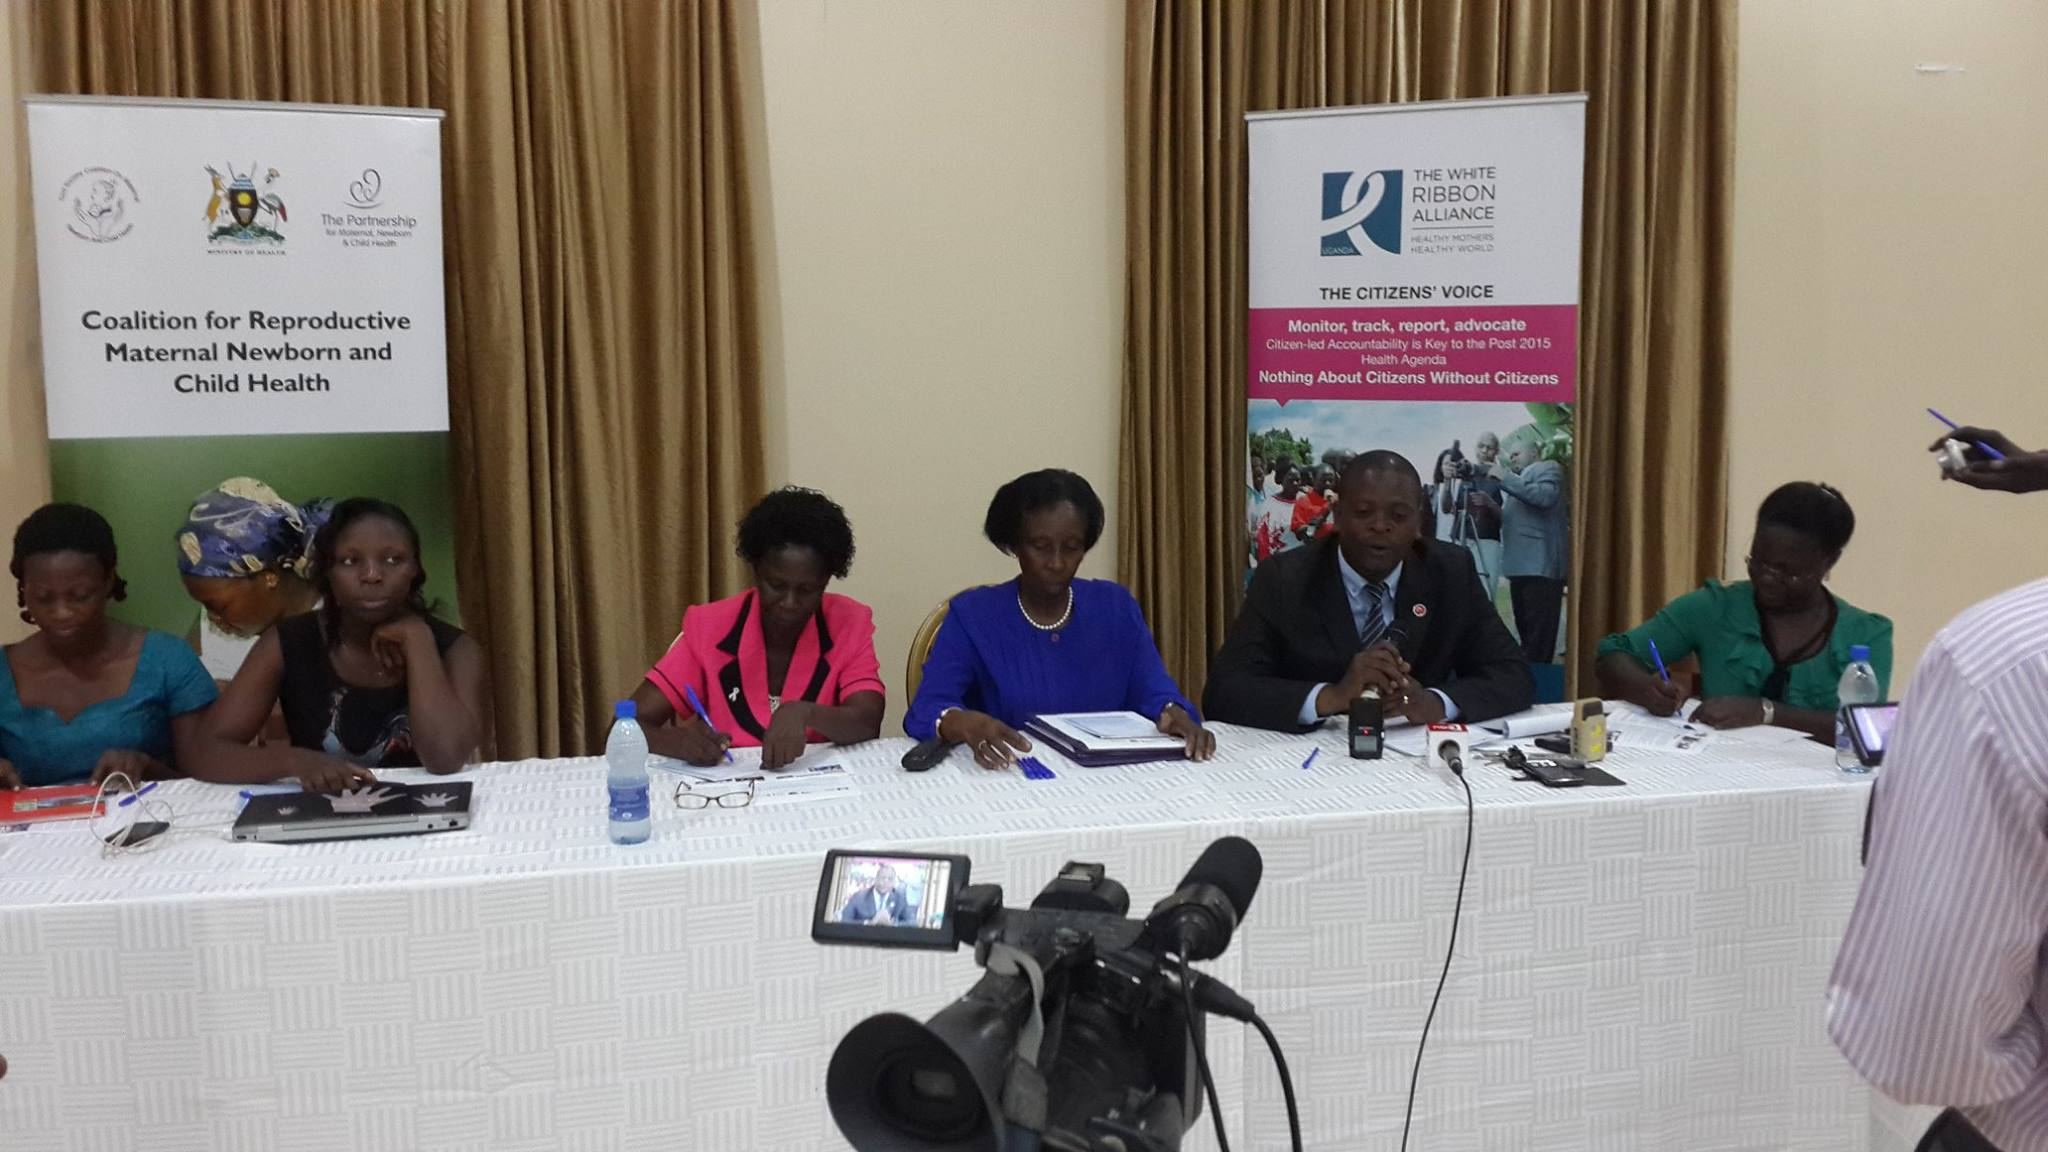 Member of Parliament Hon. Lulume Dr Bayigga Lulume Ssalongo (2nd R) addresses the press during the launch of the Citizens Hearing Global Report today at Imperial Royale Hotel in Kampala.jpg